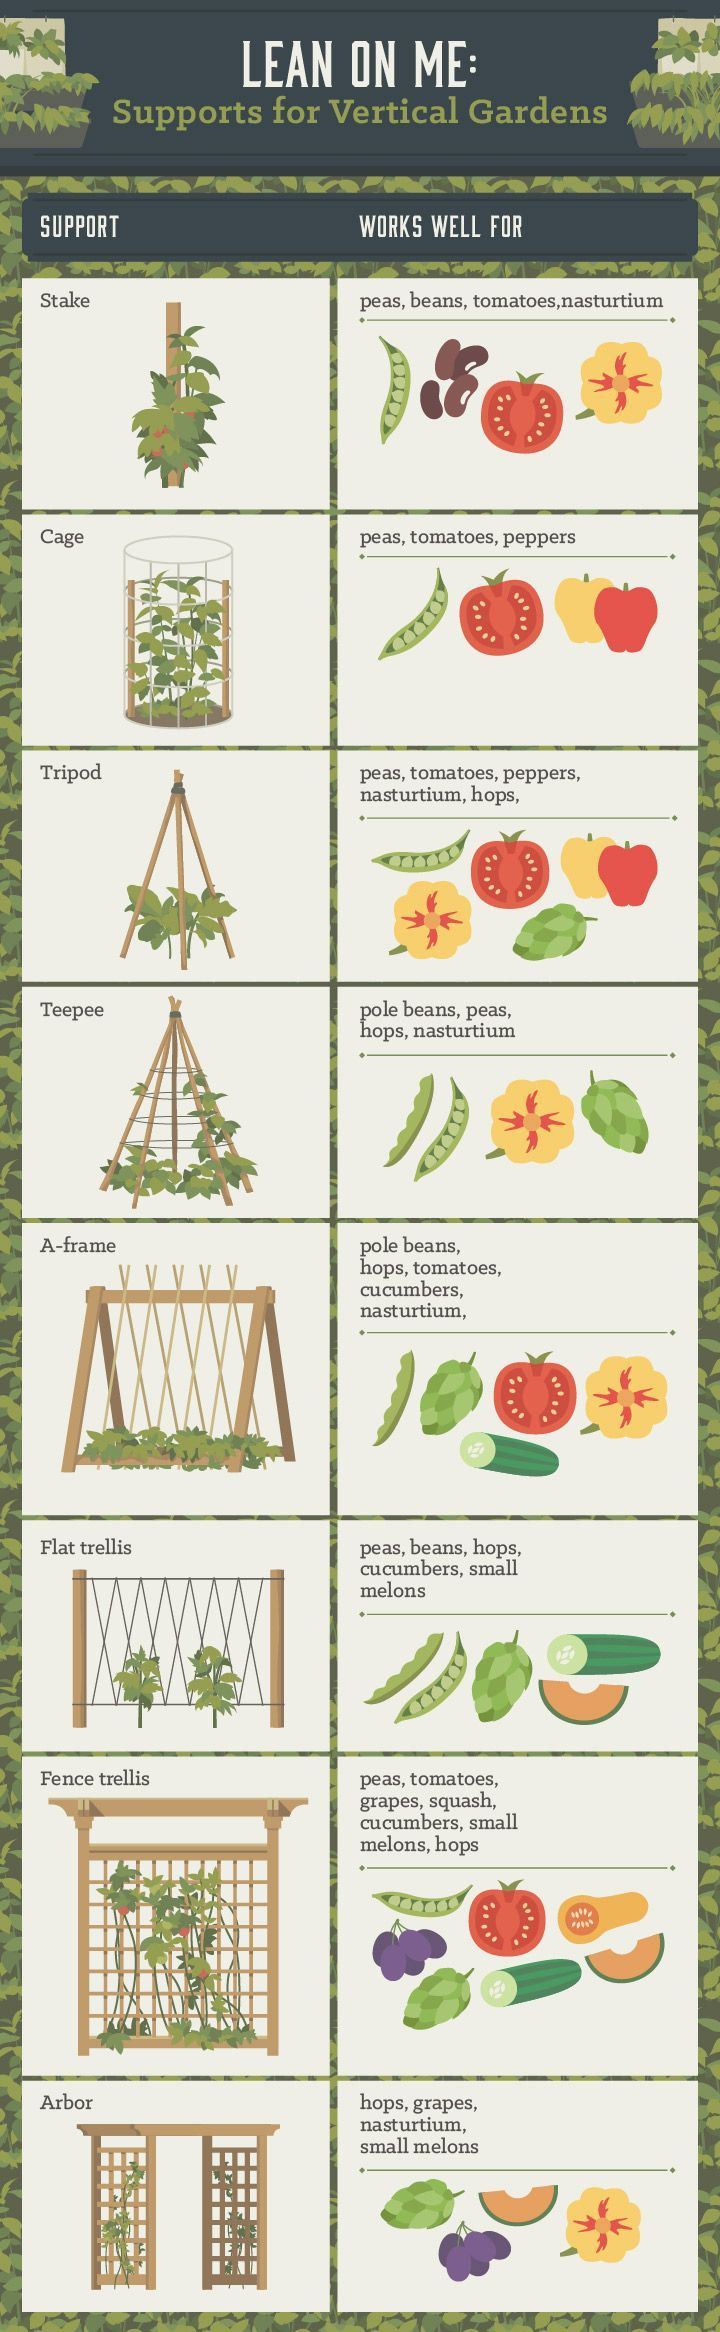 These great tips of how to save gardening space by growing vertically up allows you use less ground space while growing vining plants or vegetables. For th